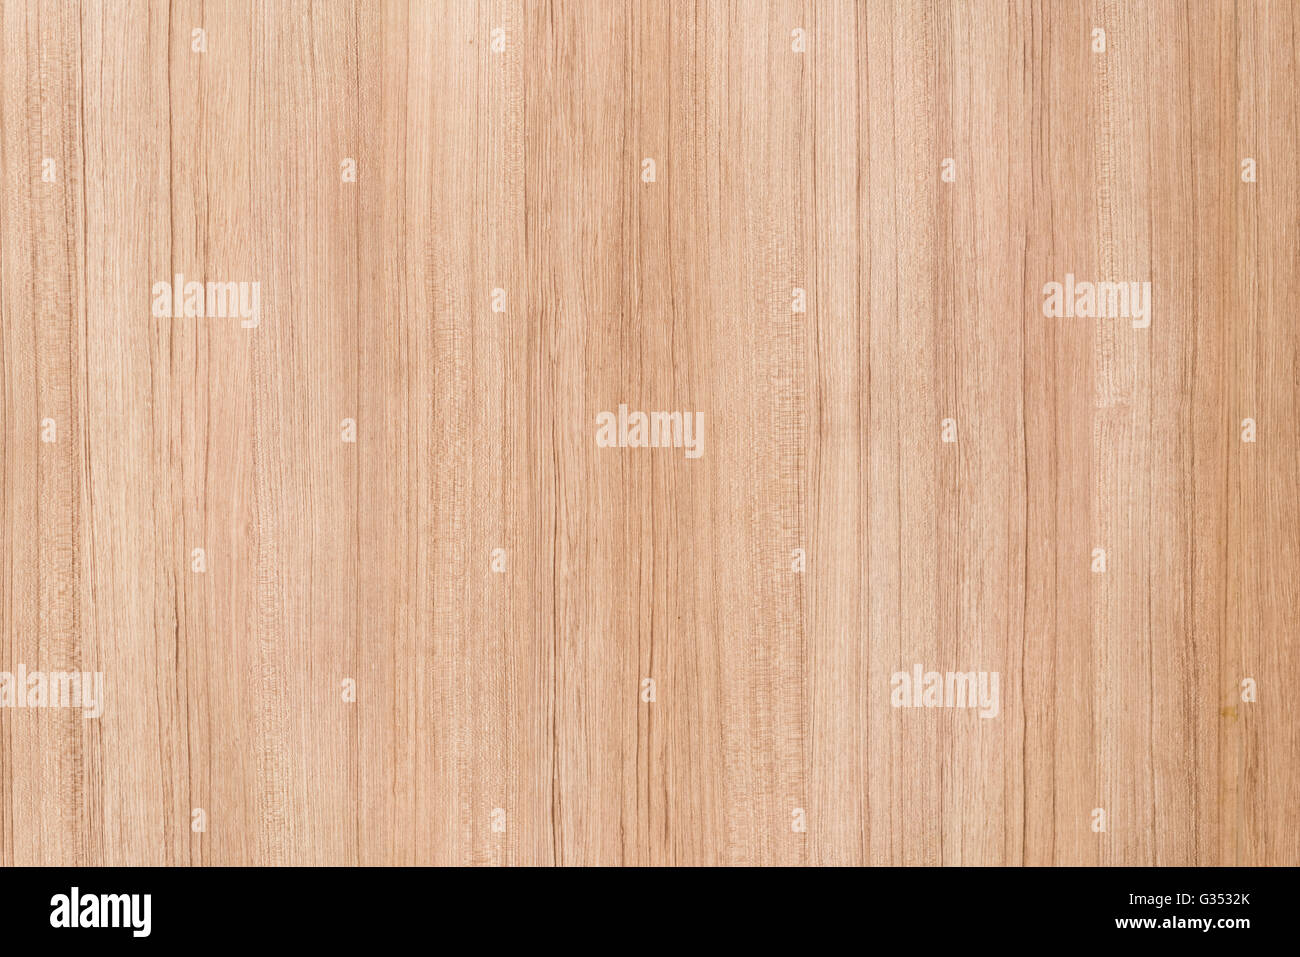 light wood floor texture. Interesting Texture Light Brown Laminate Wood Flooring Or Wall Texture Background Image  Vertical Pattern For Wood Floor Texture